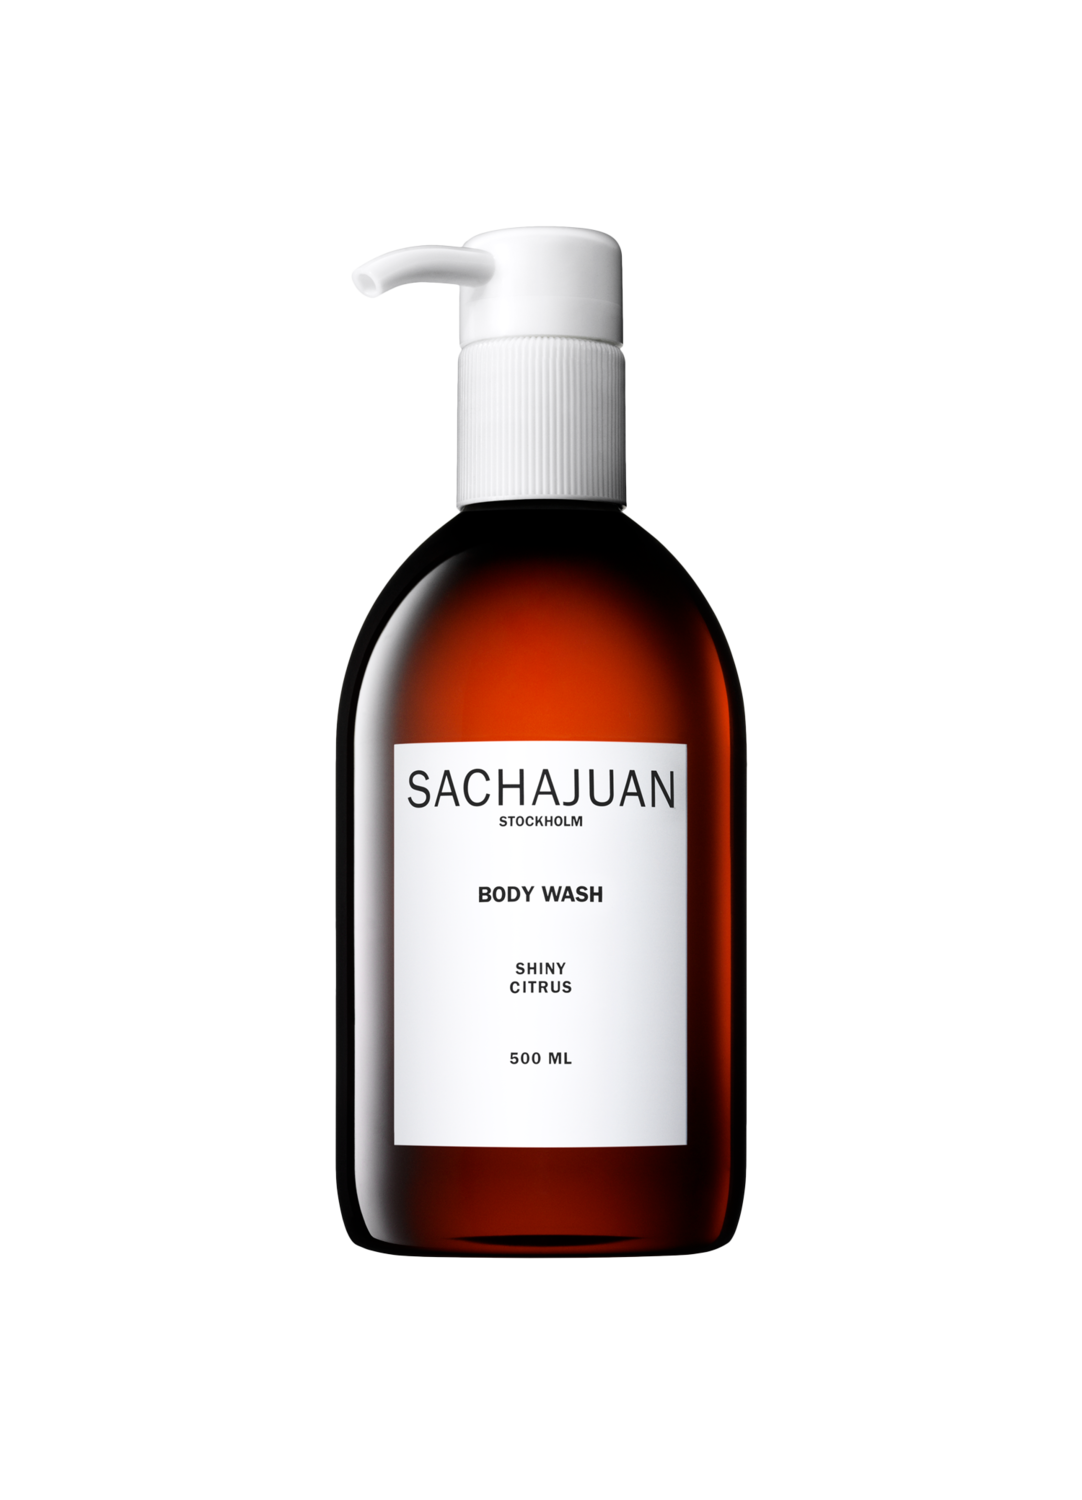 sachajuan | body wash - shiny citrus[product_type ]sachajuan - Kiss and Makeup